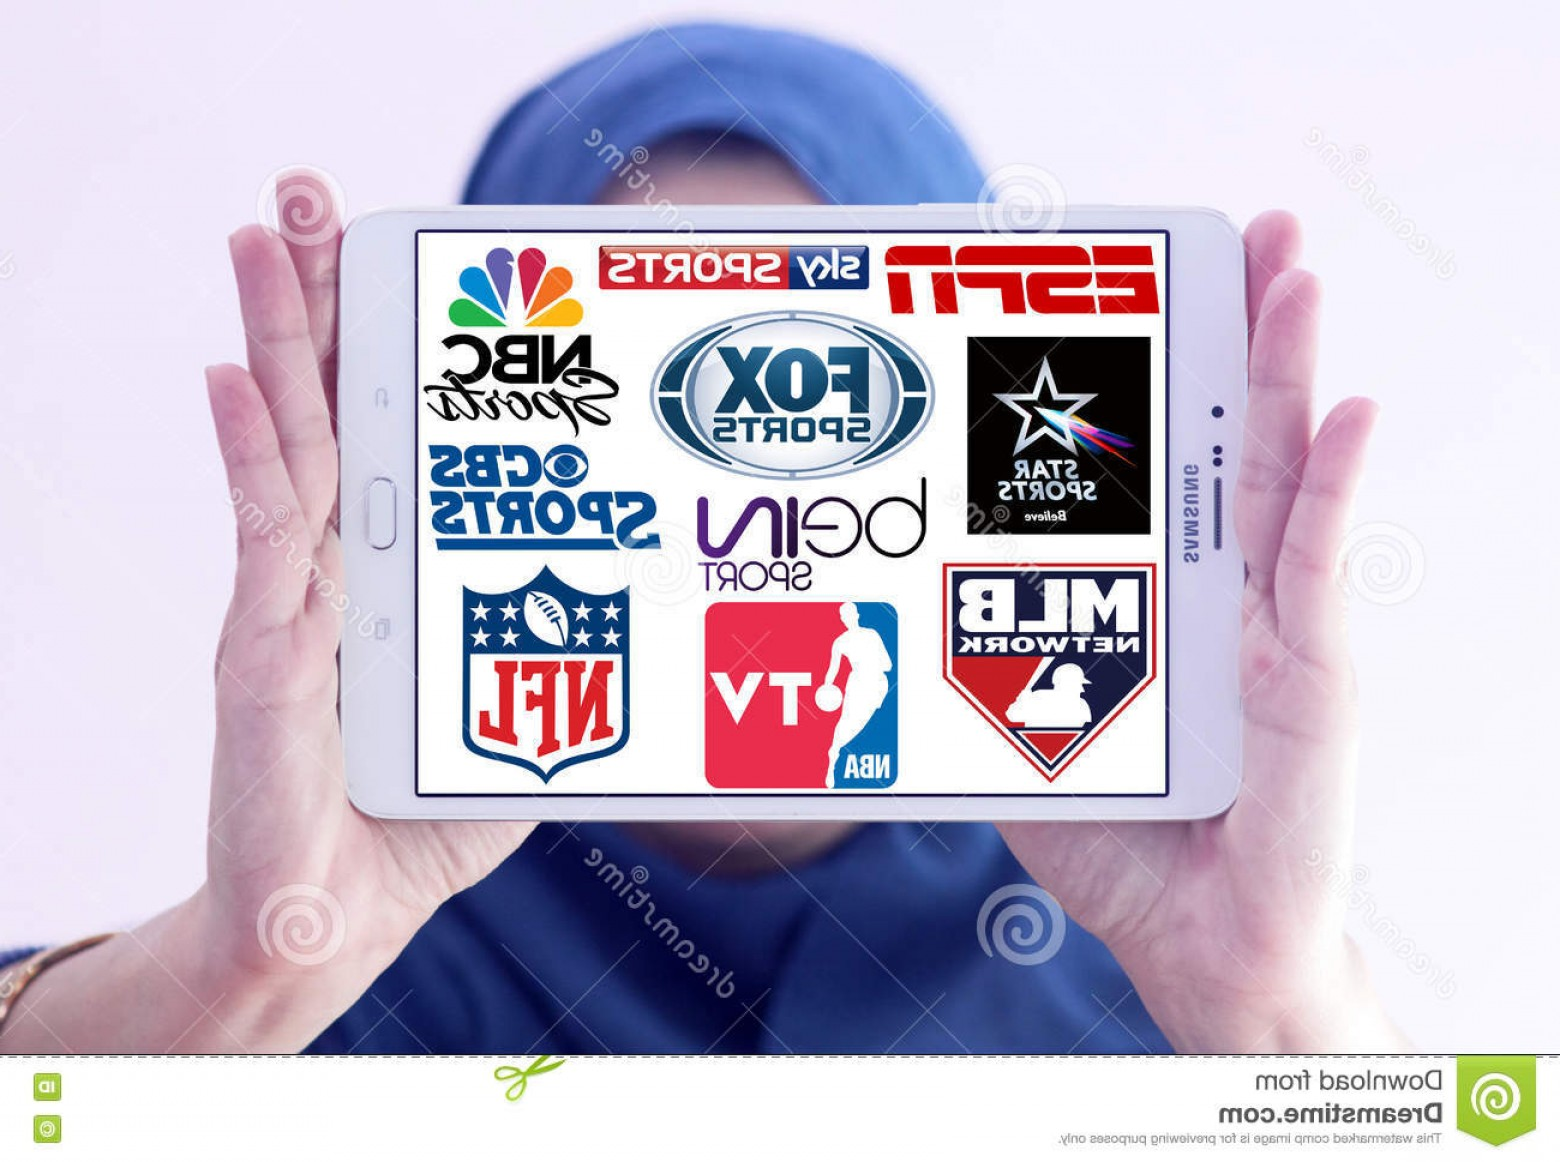 MLB Vectors: Editorial Image Logos Top Famous Tv Sports Channels Networks Collection Vectors Most Popular Television World White Tablet Holded Image